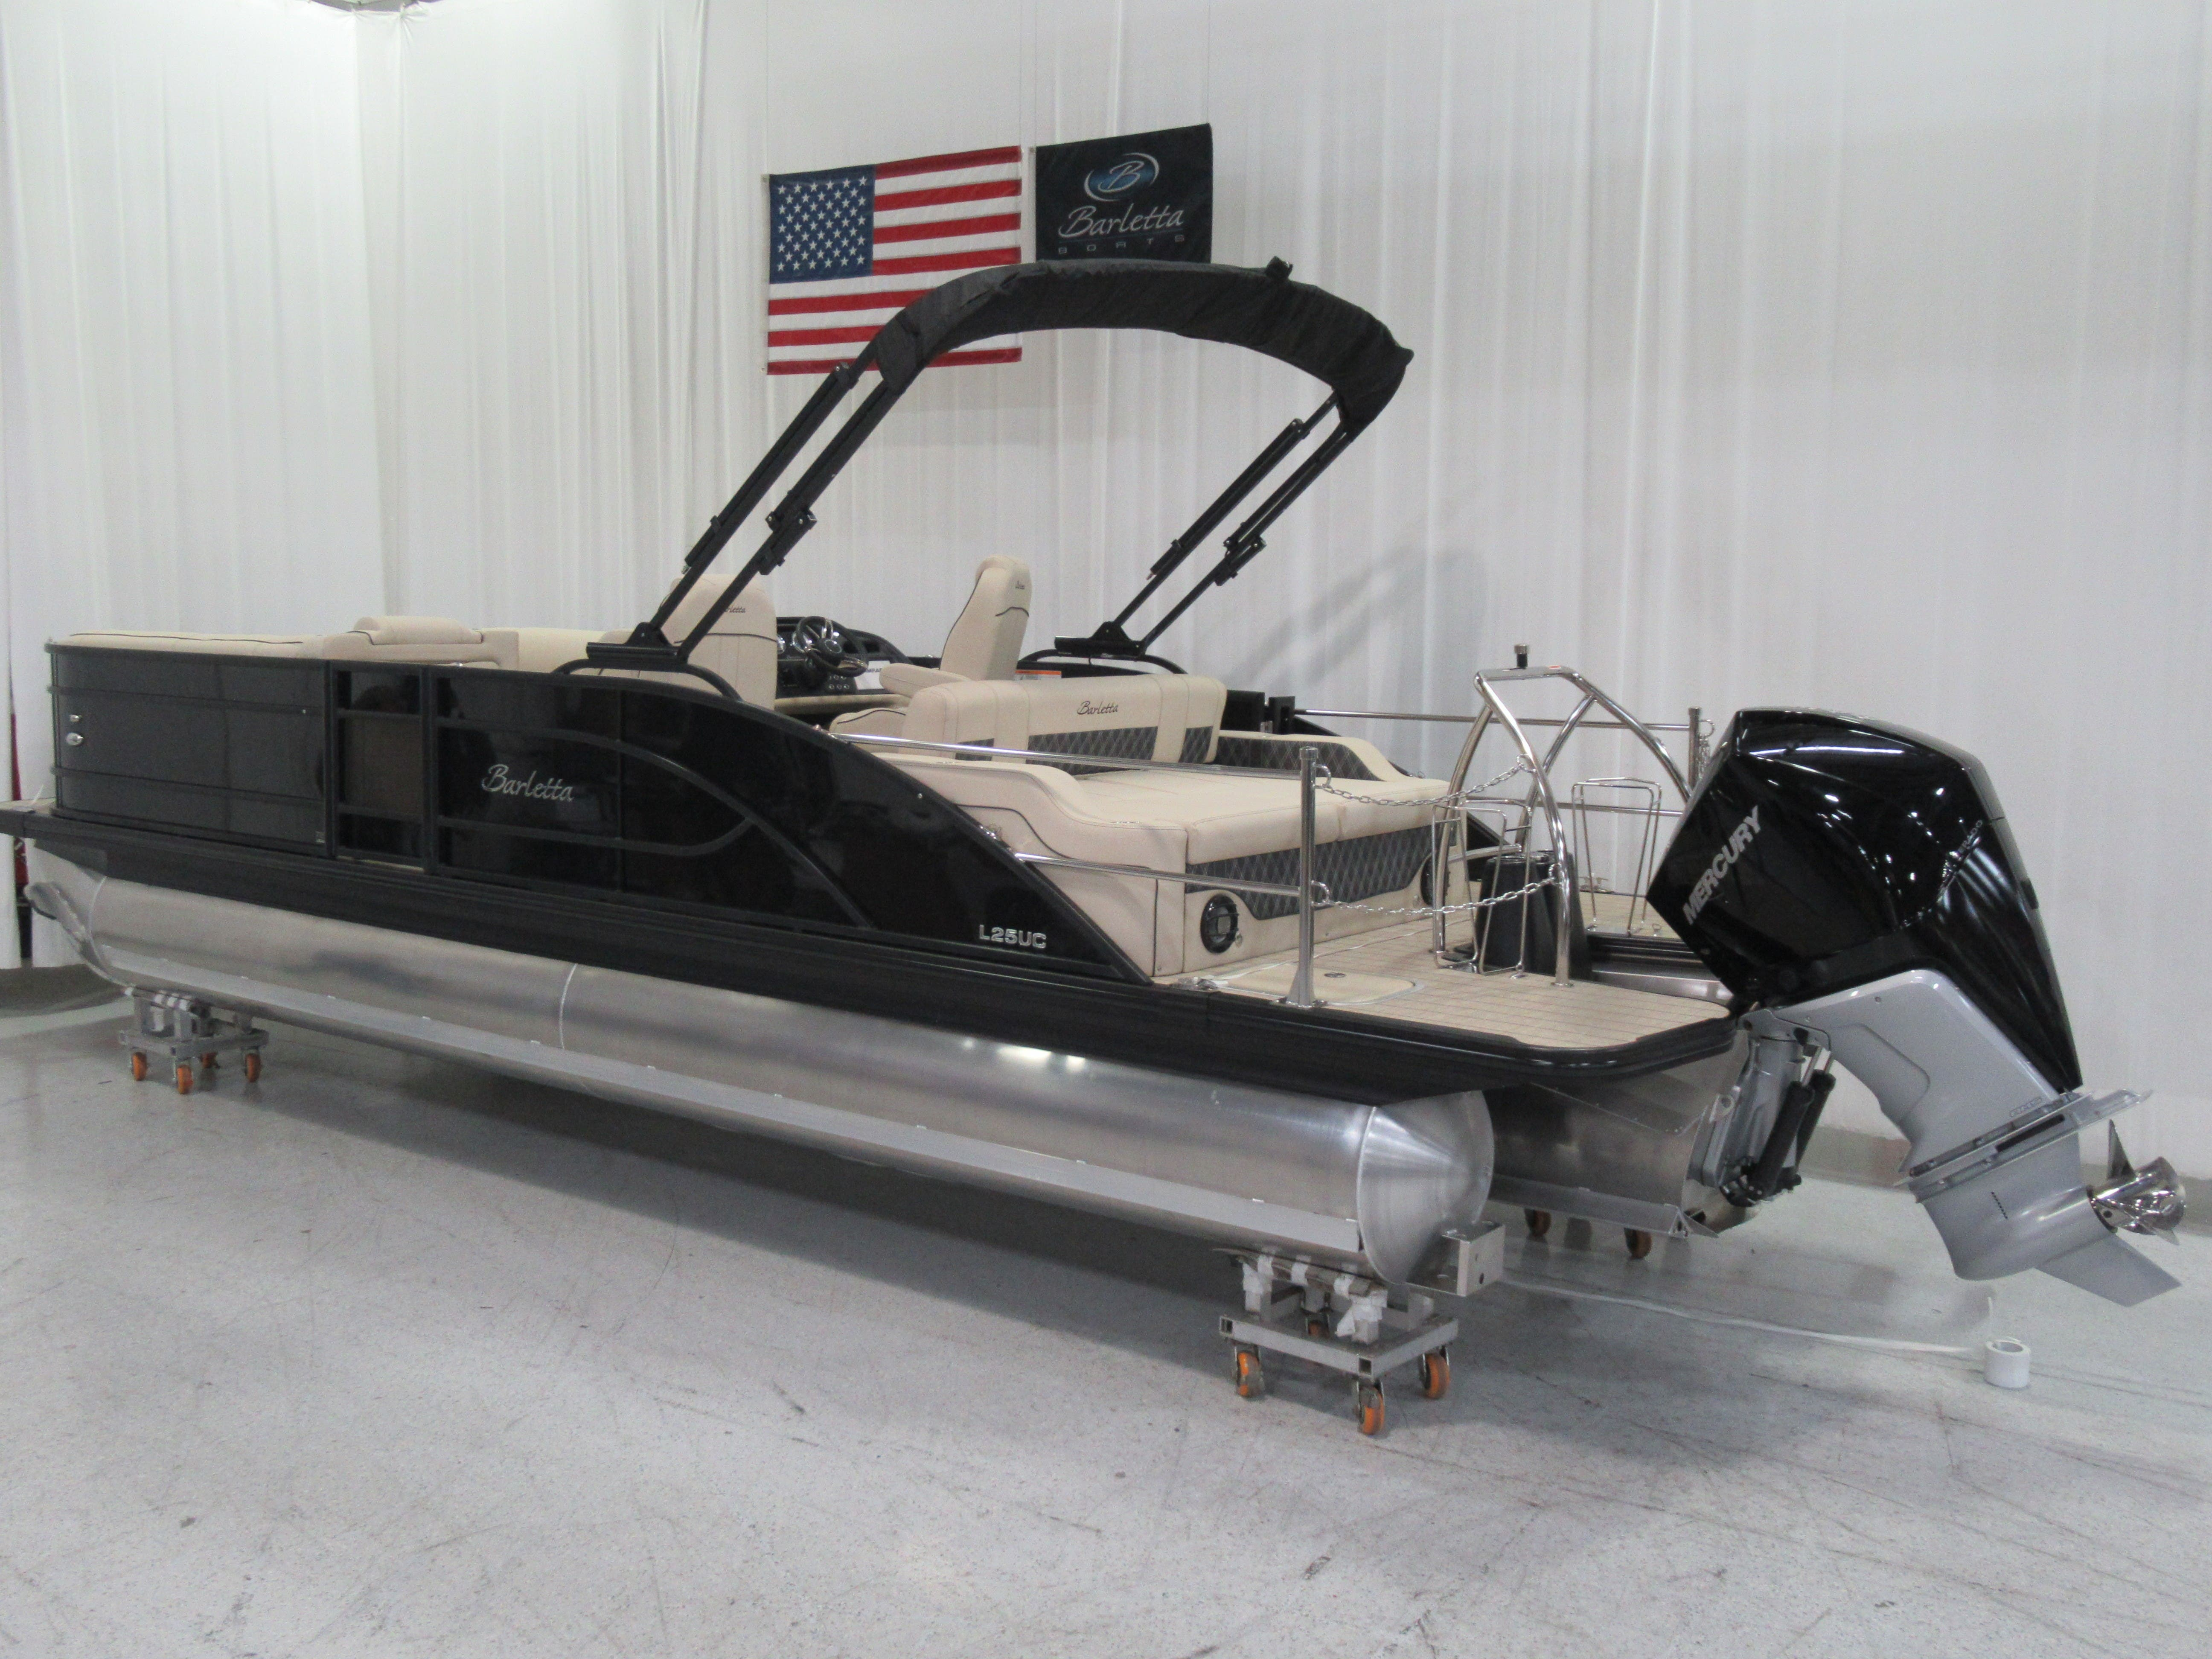 2021 Barletta boat for sale, model of the boat is L25uc & Image # 3 of 11